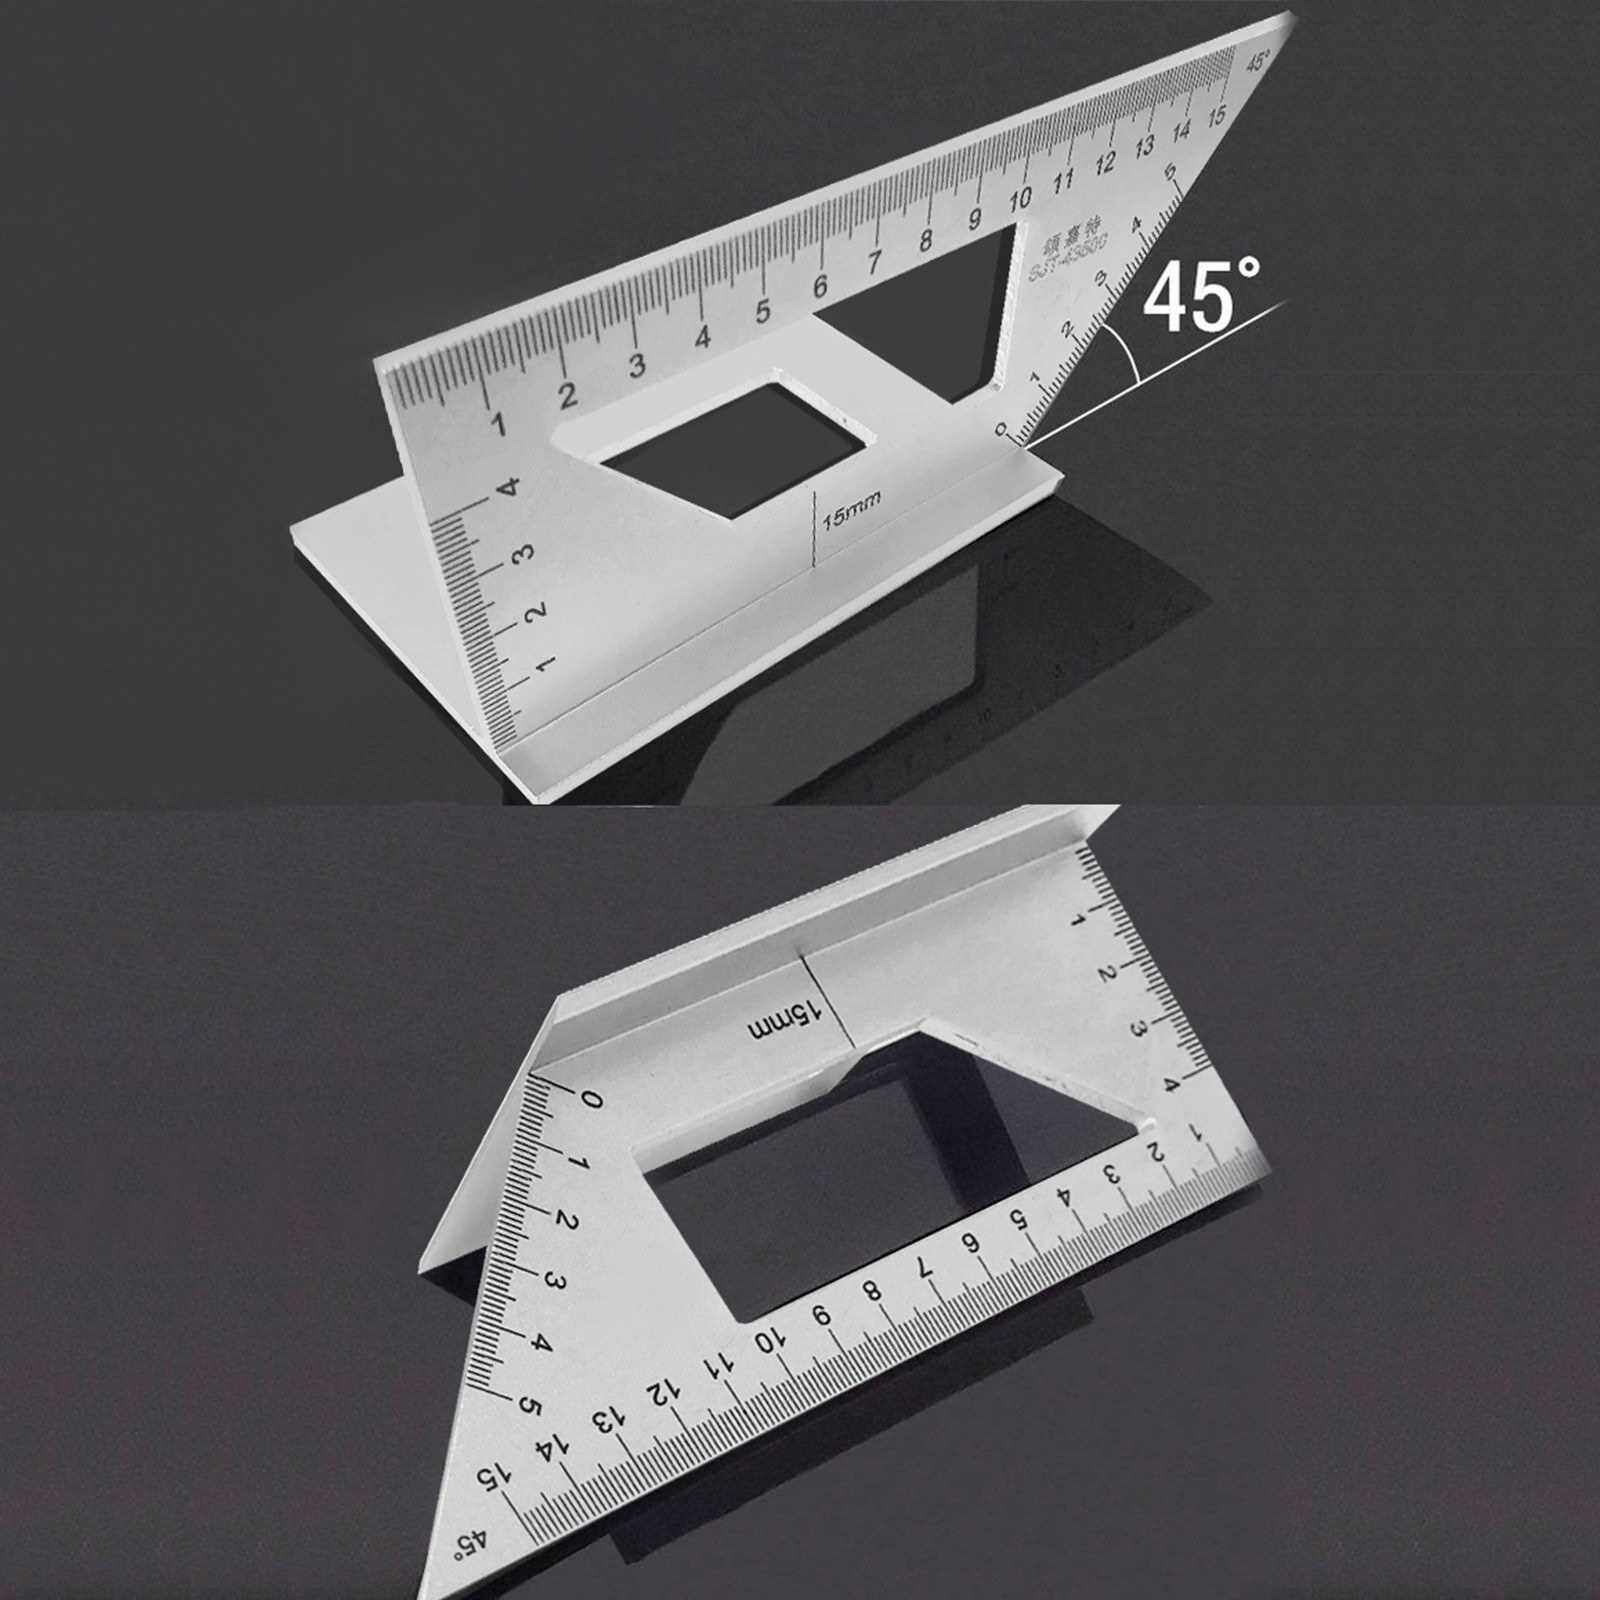 45/90 Degree Layout Miter Gauge Aluminum Alloy Multifunctional Angle Gauge Layout Square for Woodworking Industrial (Standard)